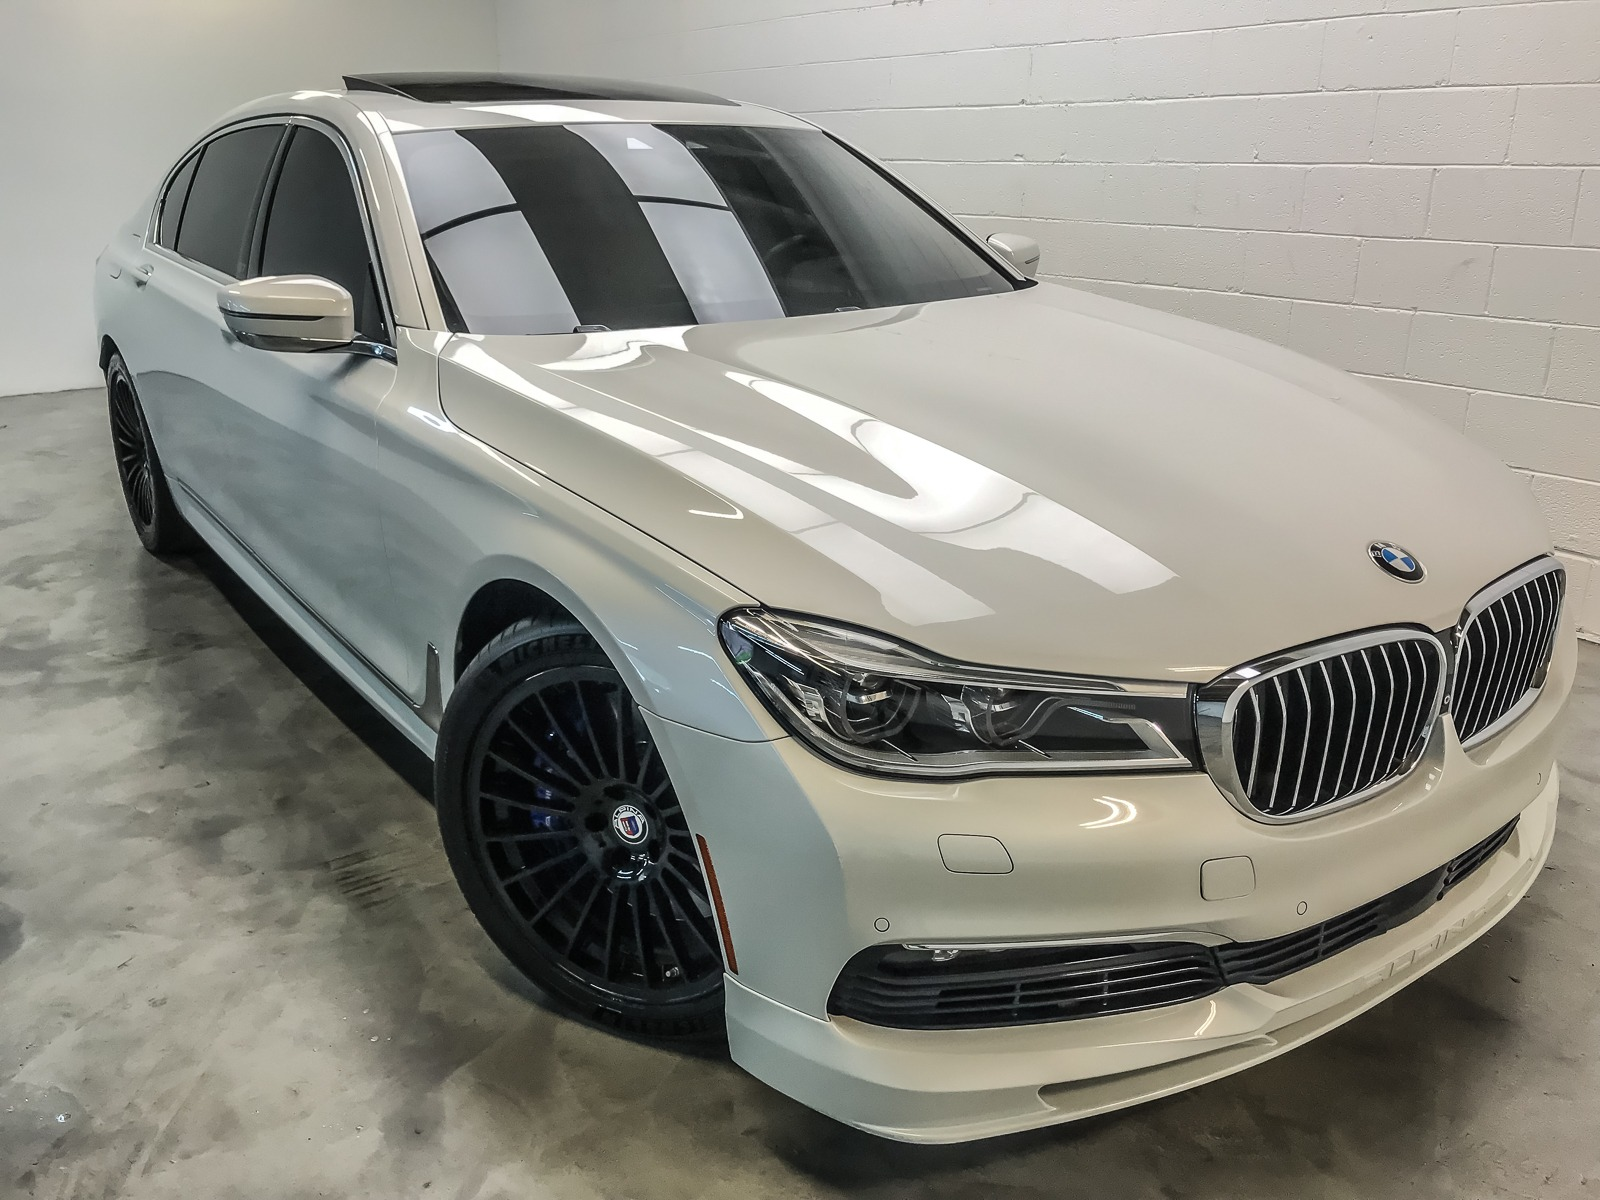 Used 2017 Bmw 7 Series Alpina B7 Xdrive For Sale 84 991 Inetwork Auto Group Stock P856023